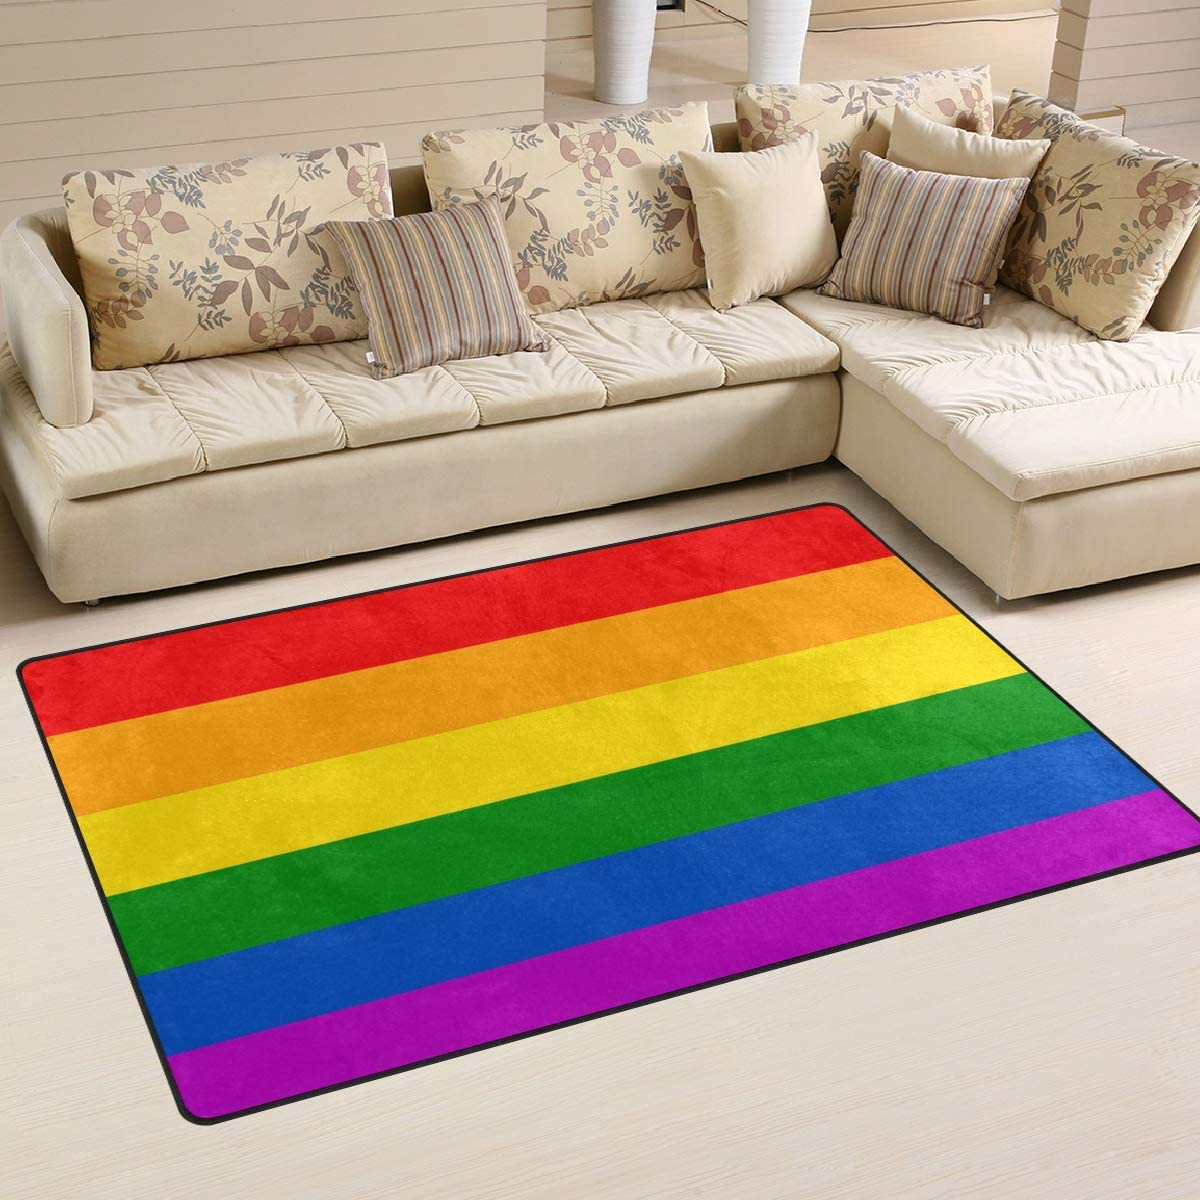 Pride Flooring And Home Decor from images-na.ssl-images-amazon.com